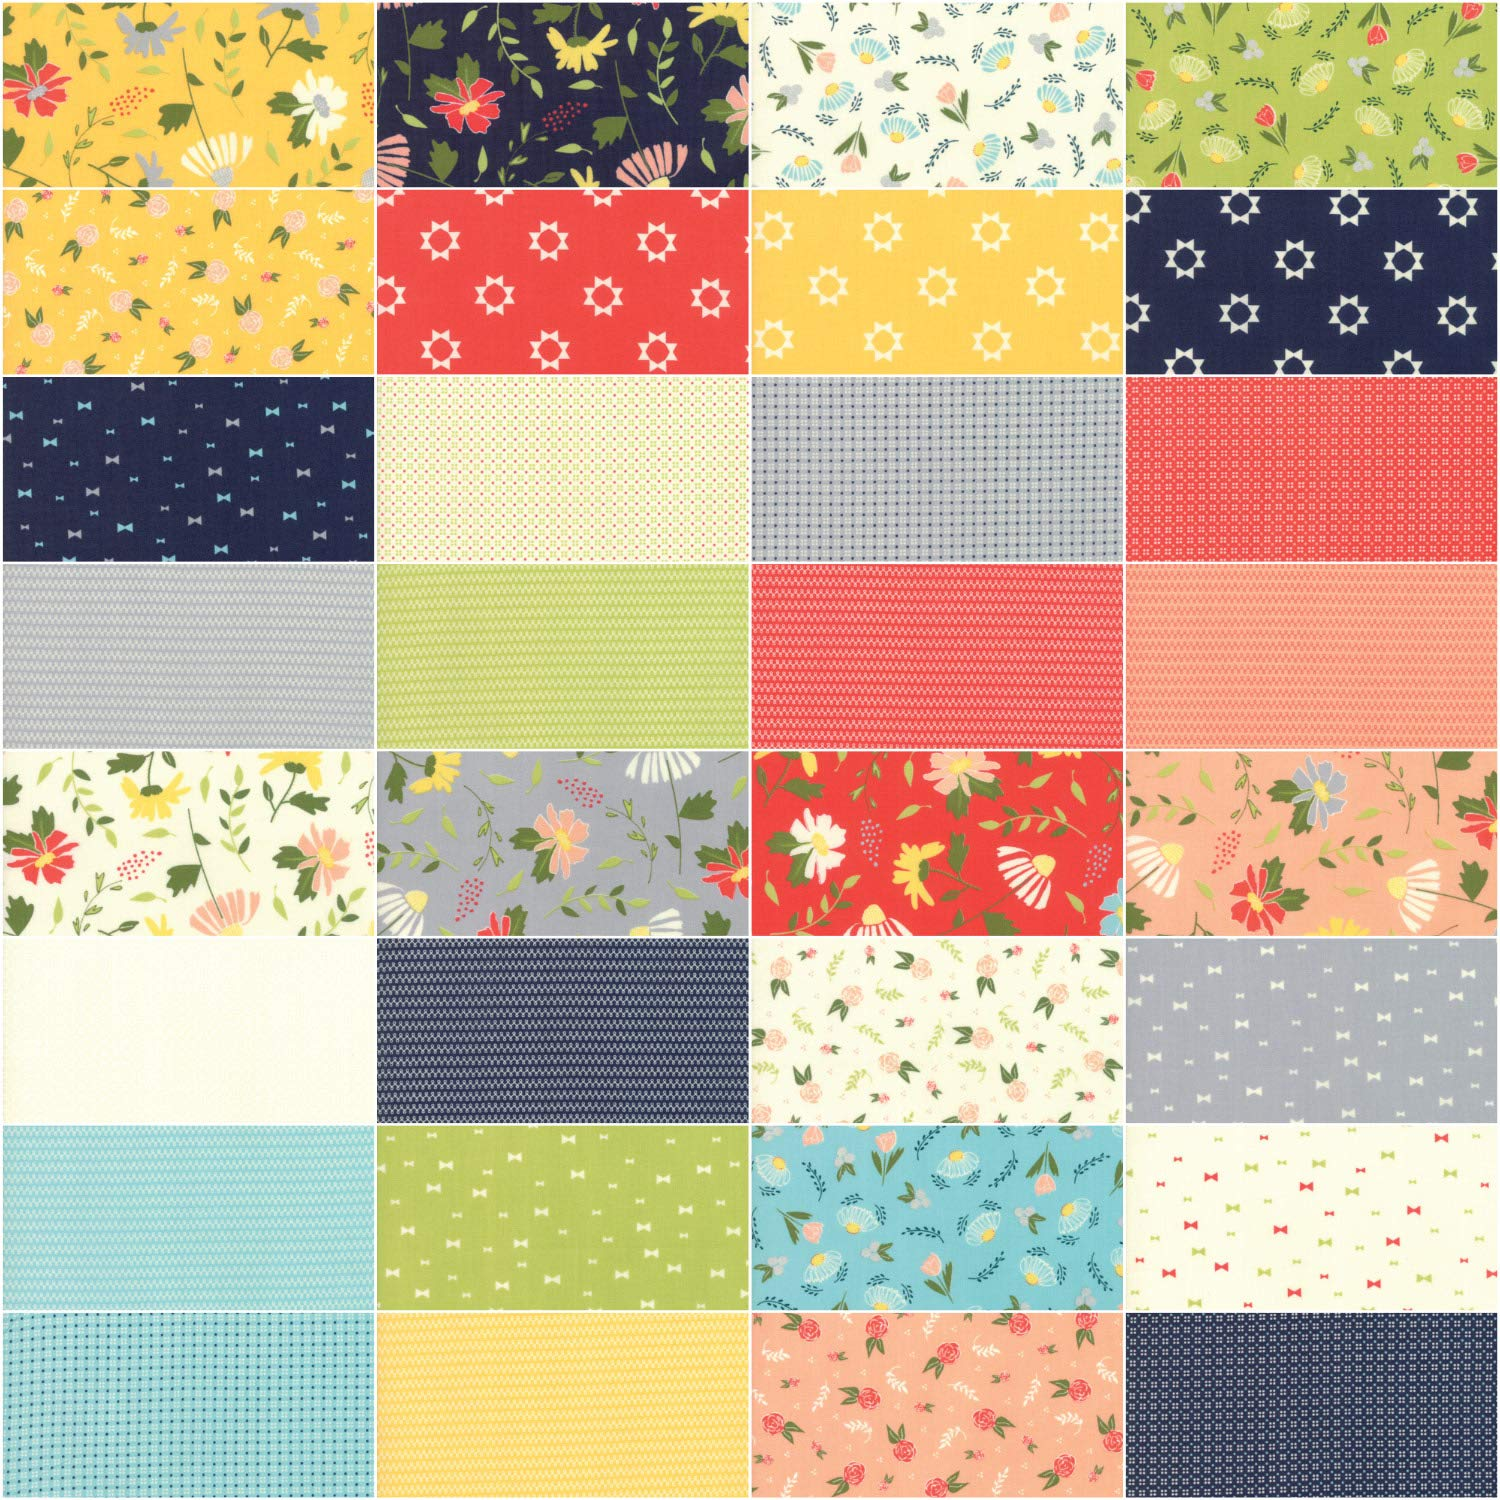 42-10 Precut Fabric Quilt Squares by Sherri /& Chelsi Clover Hollow Layer Cake